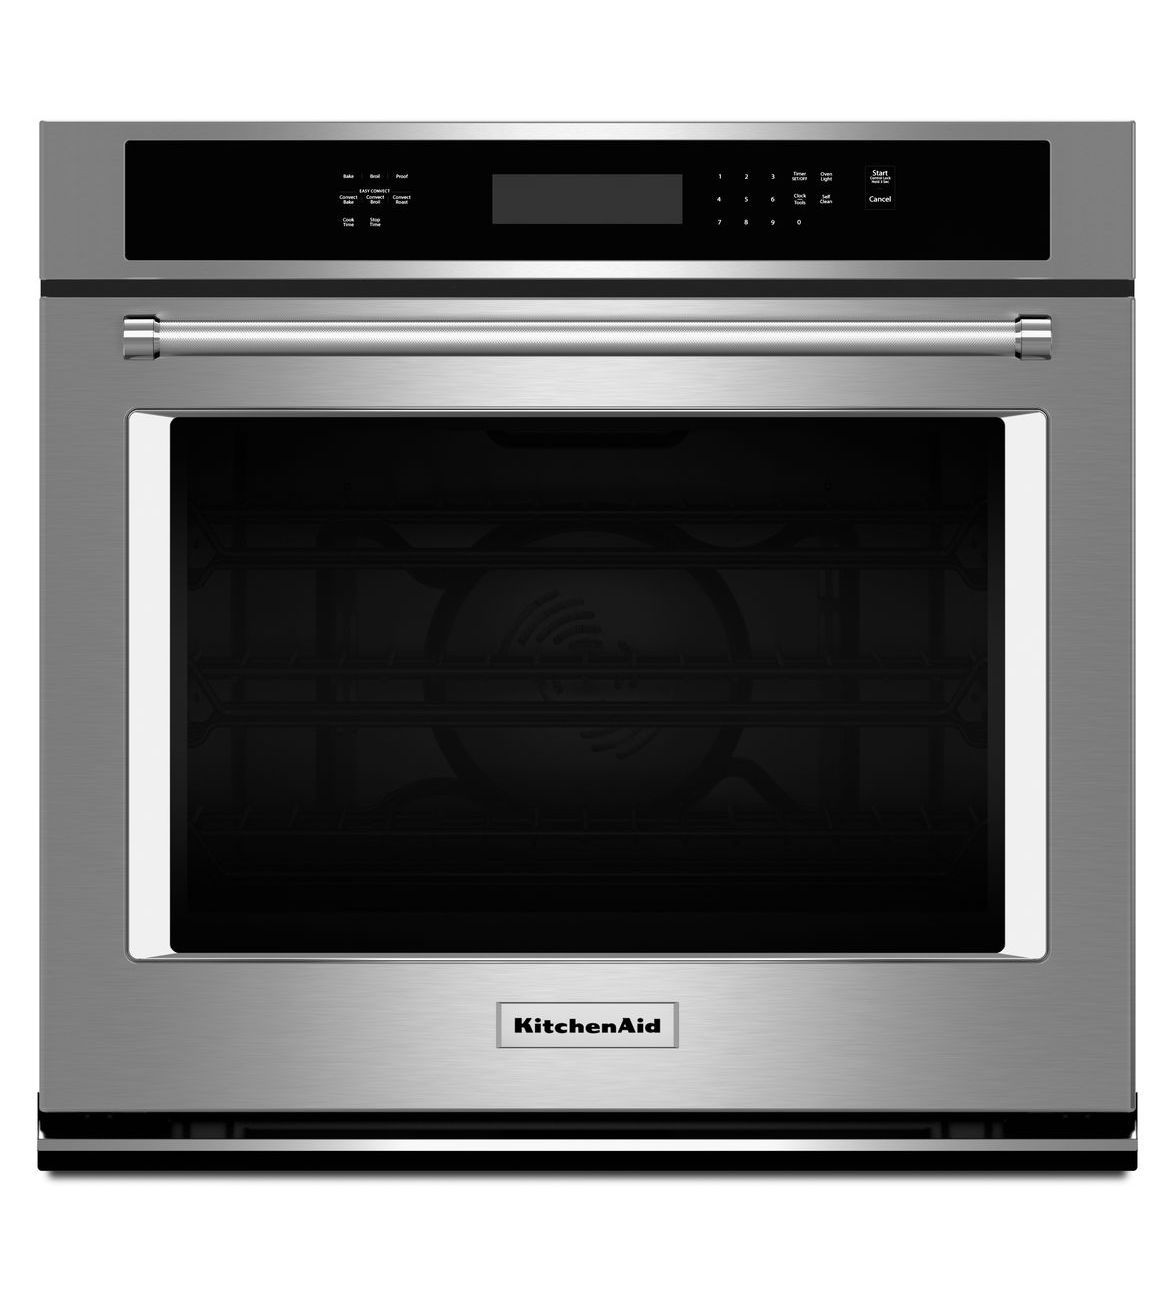 Lovely Miele Vs KitchenAid Wall Ovens (Reviews / Ratings / Prices)